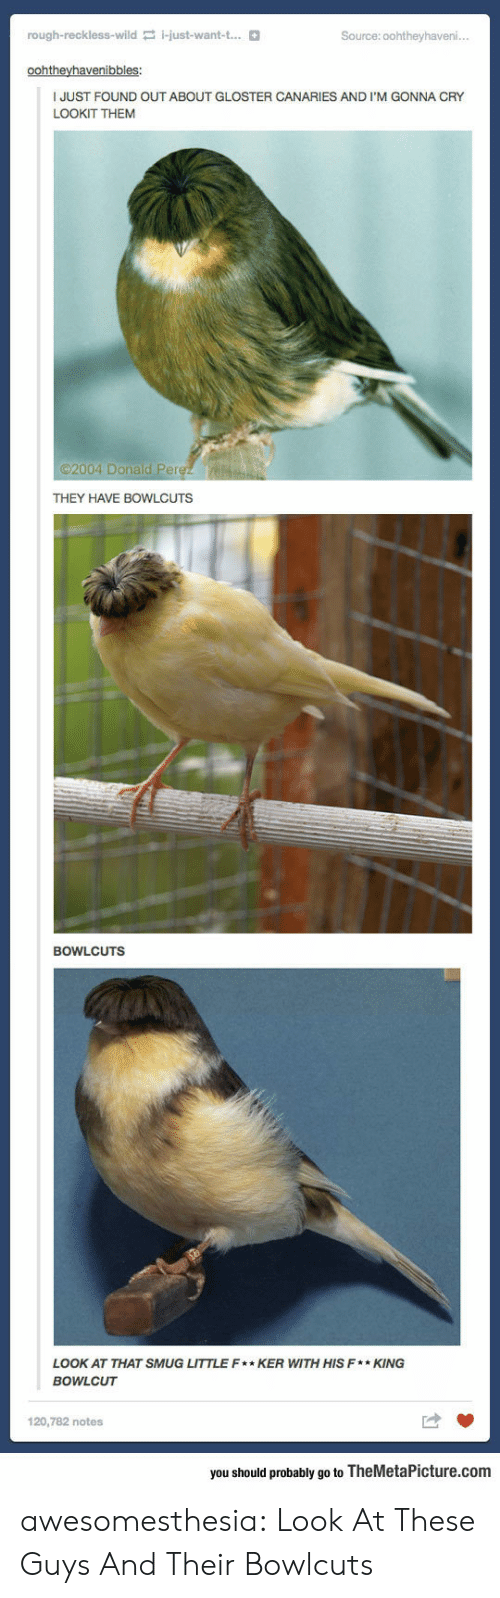 smug: rough-reckless-wild i-just-want-t...  Source: 0ohtheyhaveni..  oohtheyhavenibbles:  JUST FOUND OUT ABOUT GLOSTER CANARIES AND I'M GONNA CRY  LOOKIT THEM  2004 Donald Perez  THEY HAVE BOWLCUTS  BOWLCUTS  LOOK AT THAT SMUG LITTLE F* KER WITH HIS F*KING  BOWLCUT  120,782 notes  you should probably go to TheMetaPicture.com awesomesthesia:  Look At These Guys And Their Bowlcuts